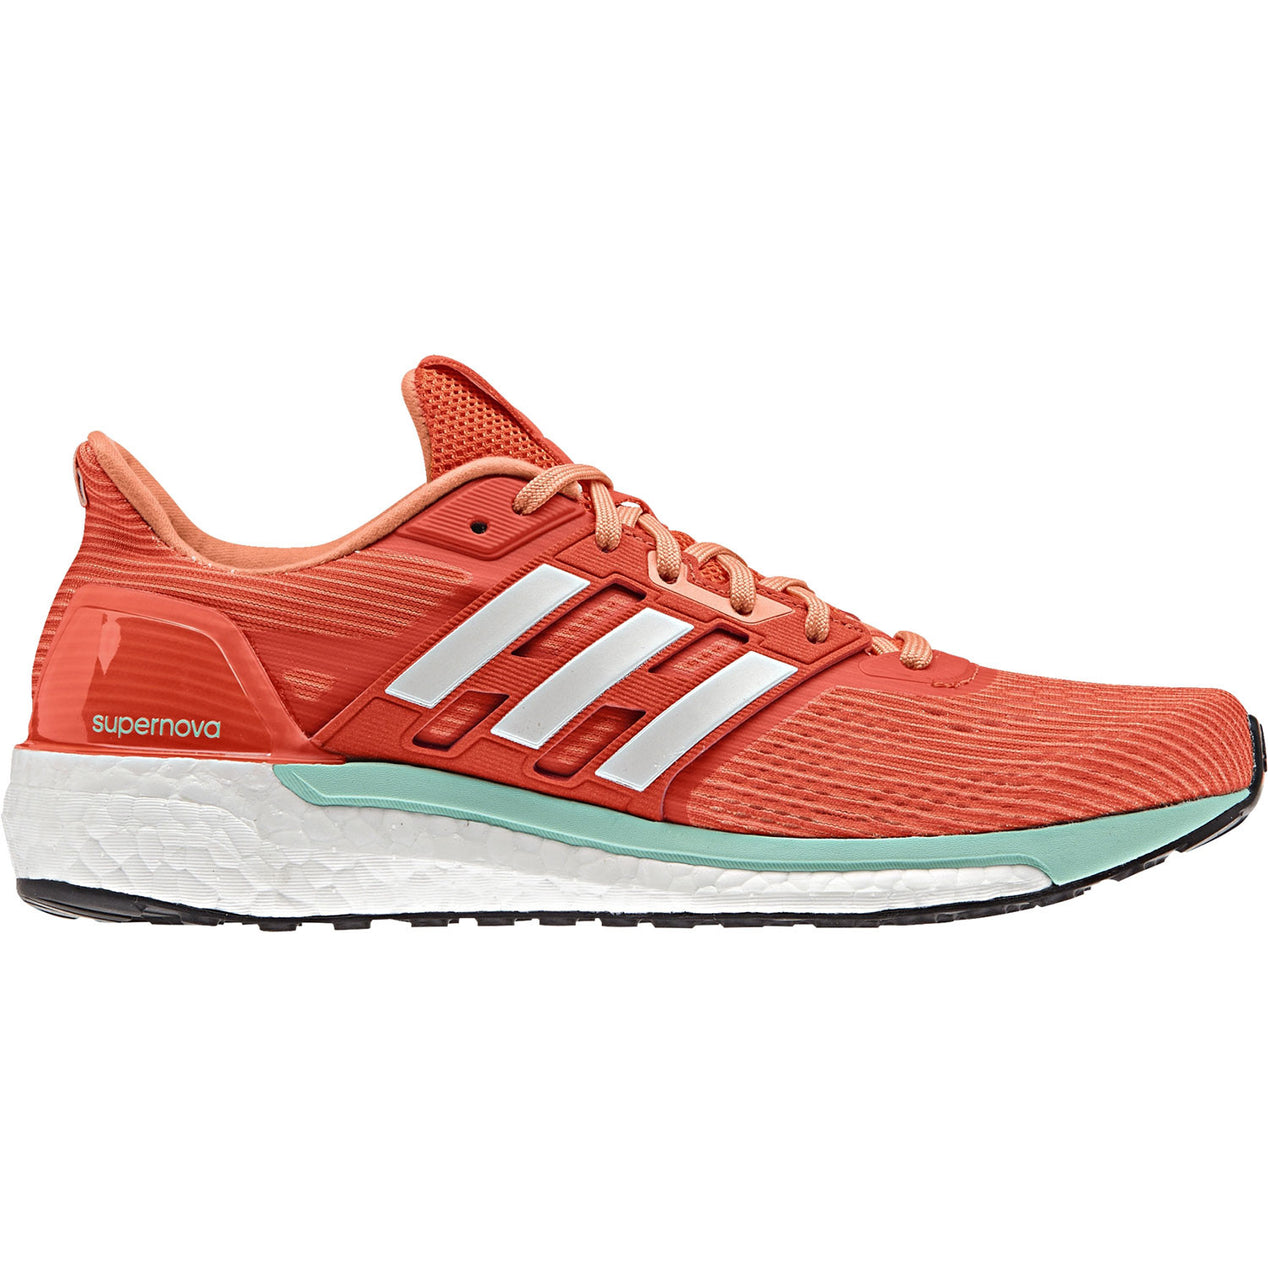 248adb149 Adidas Women s Supernova Glide 9 Running Shoes